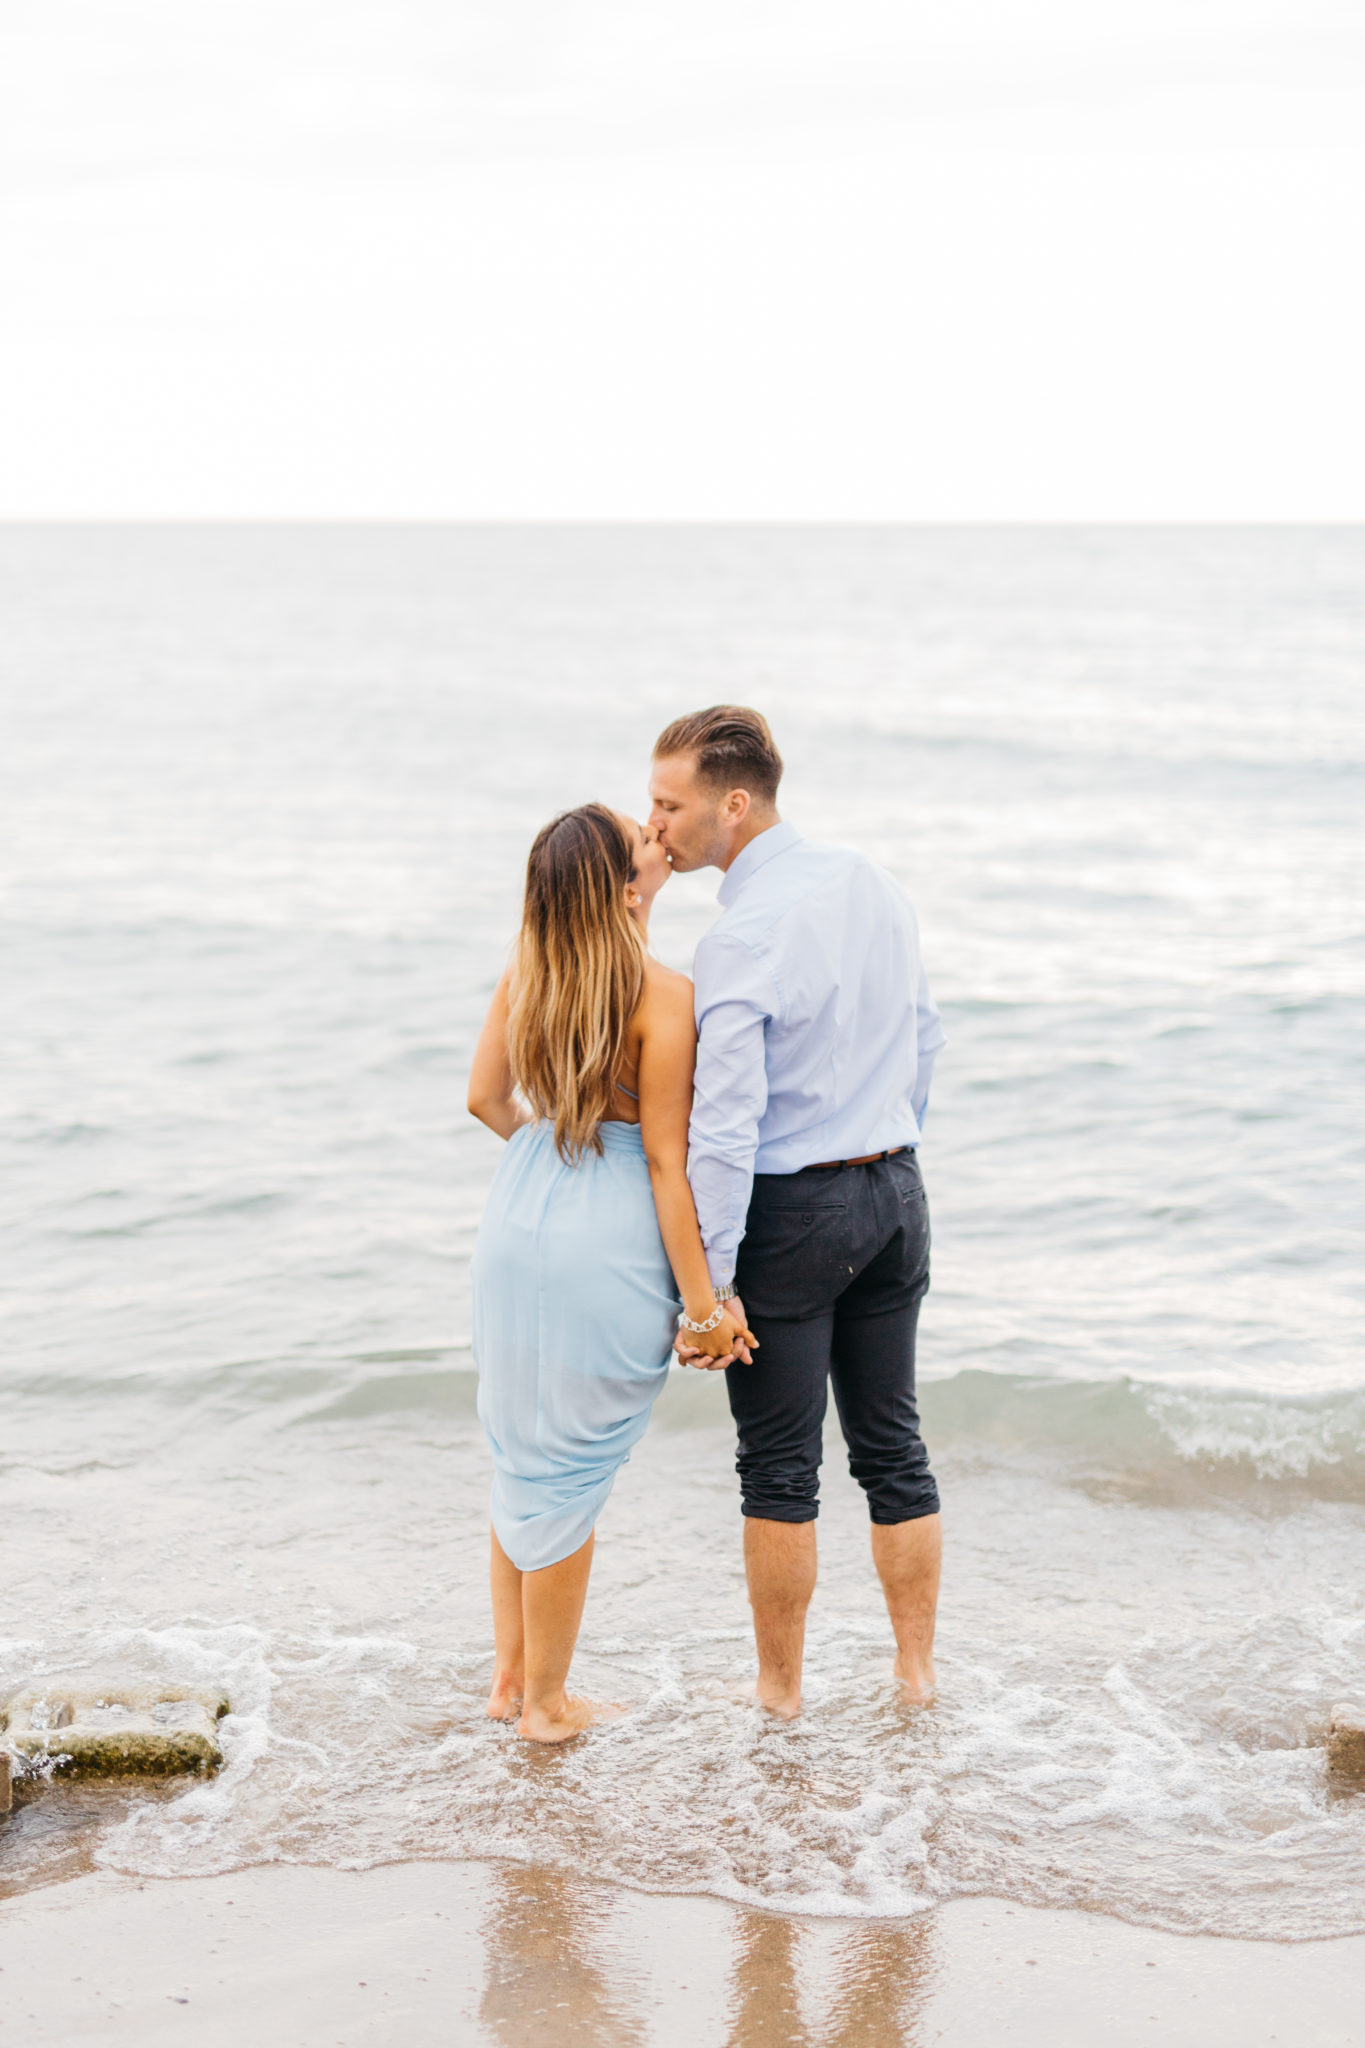 Engagement session at Scarborough Bluffs